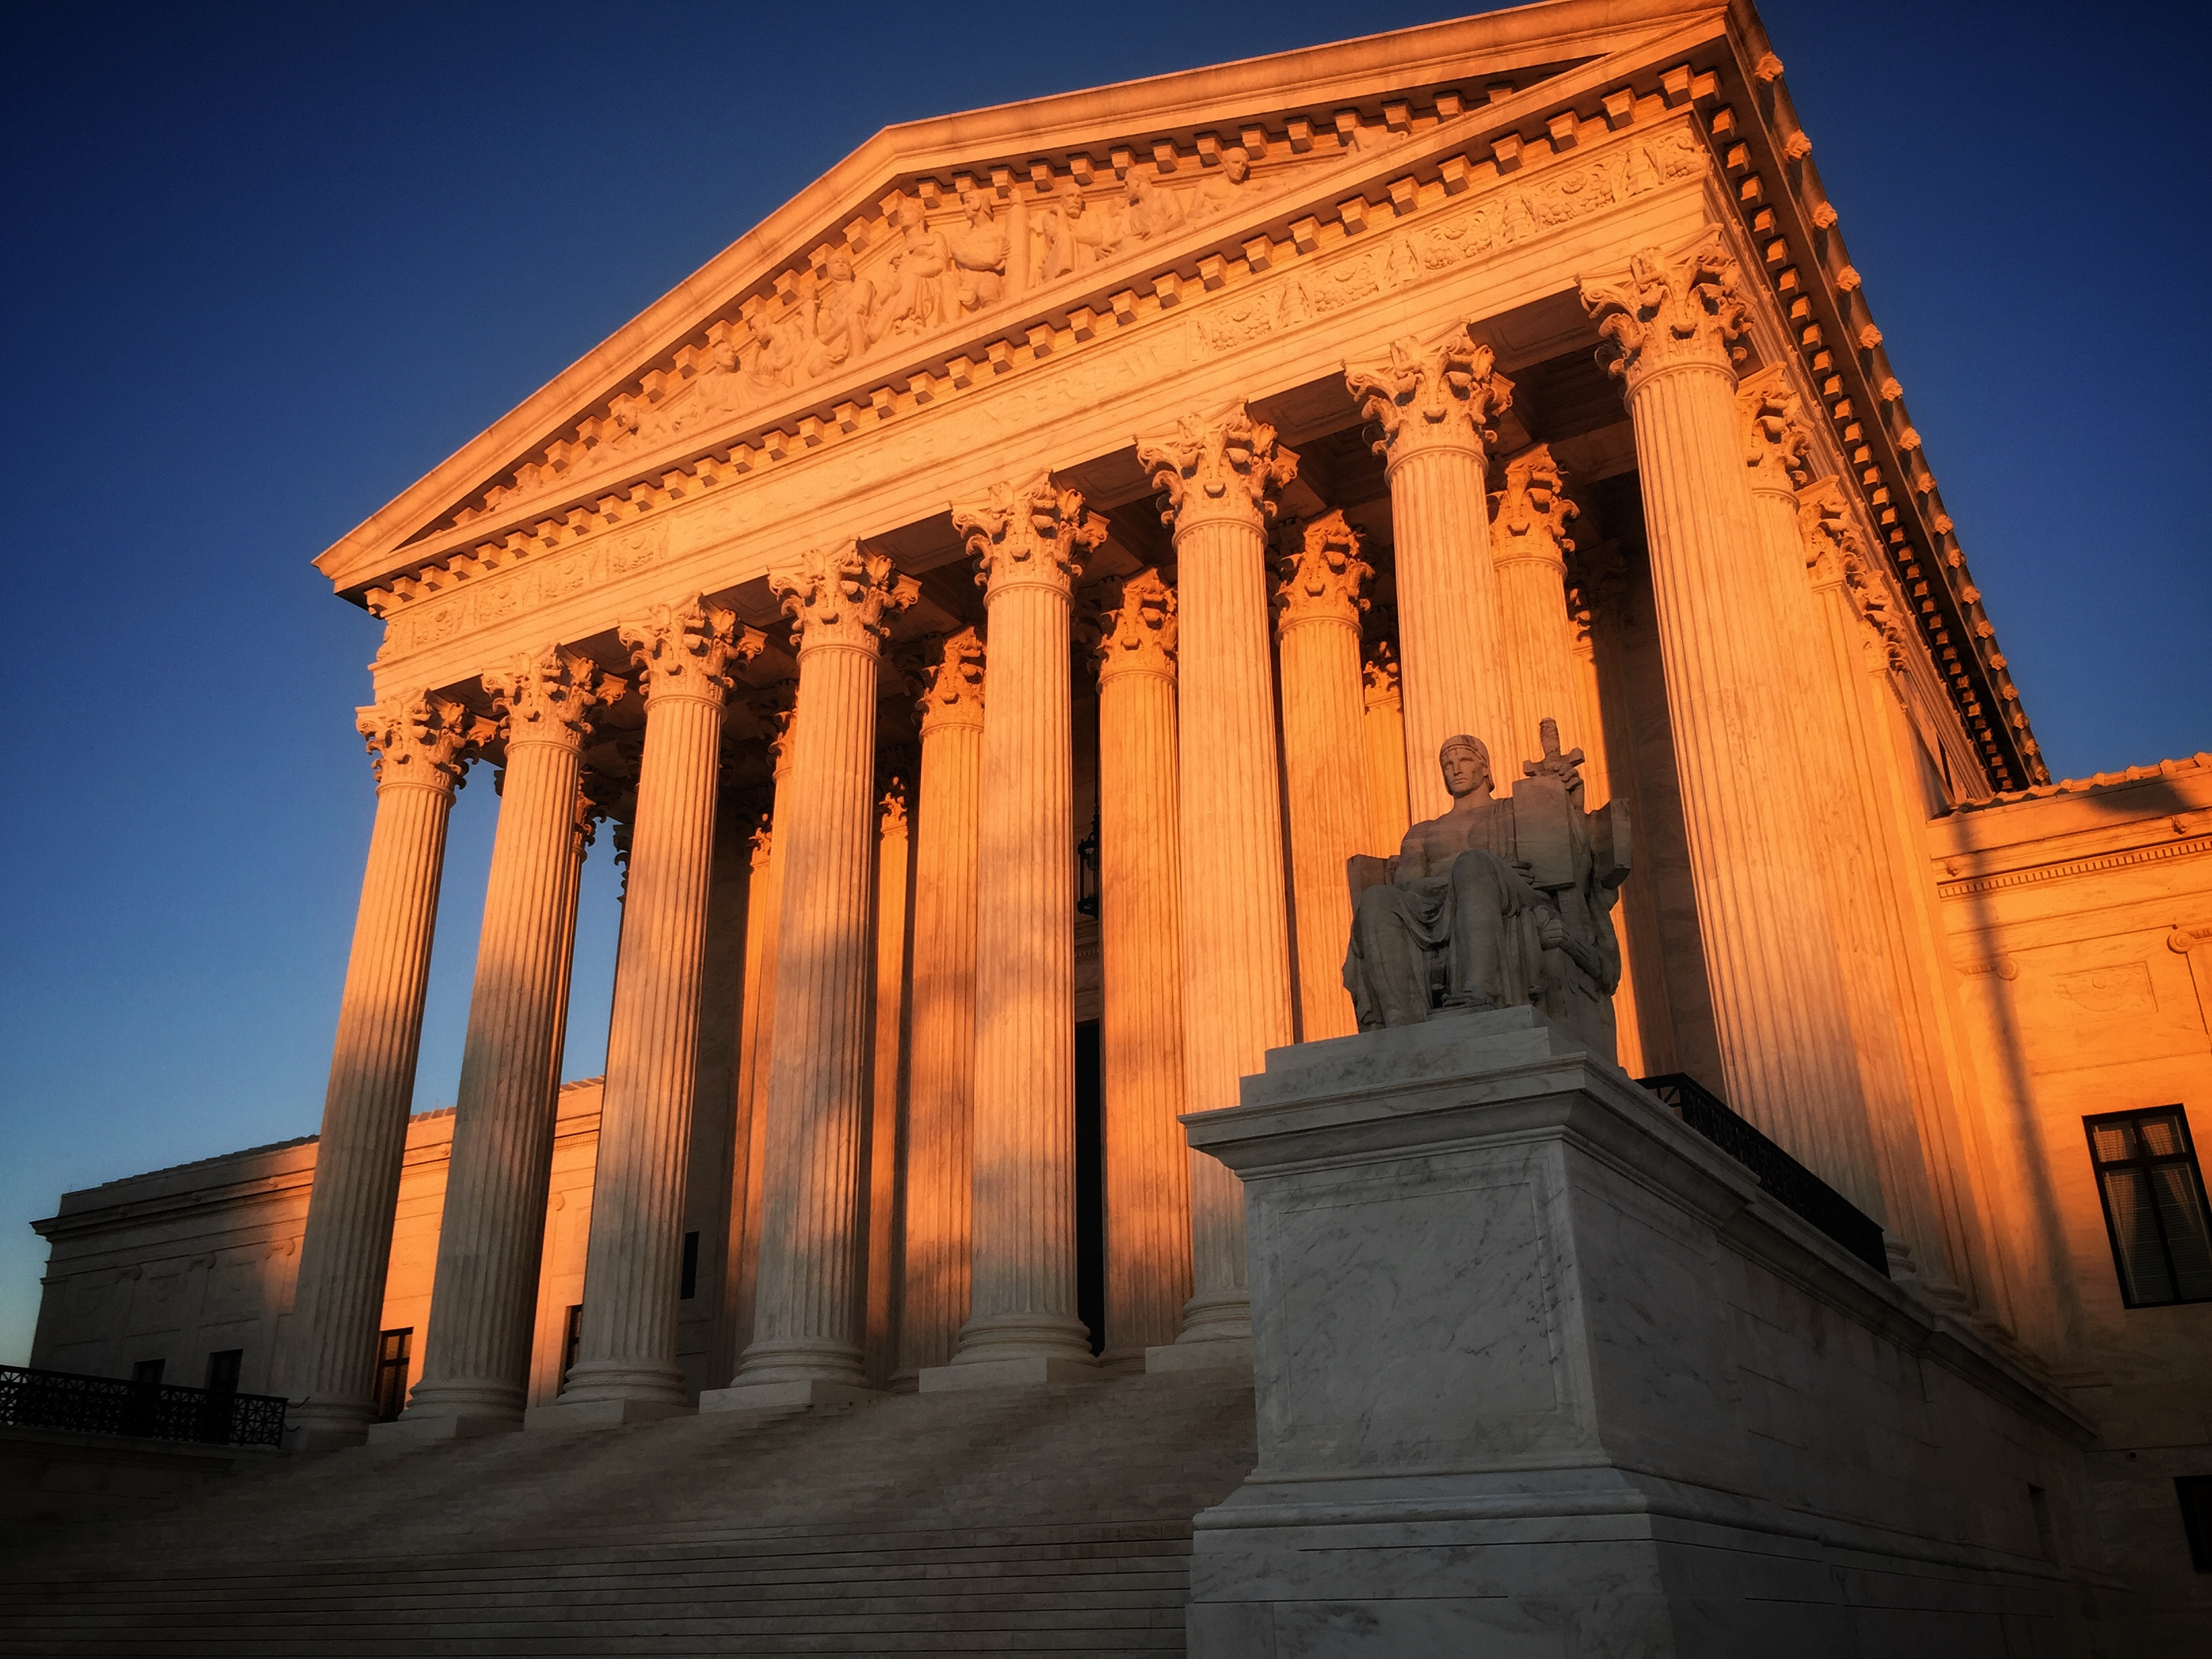 US Supreme Court Building at Sunset